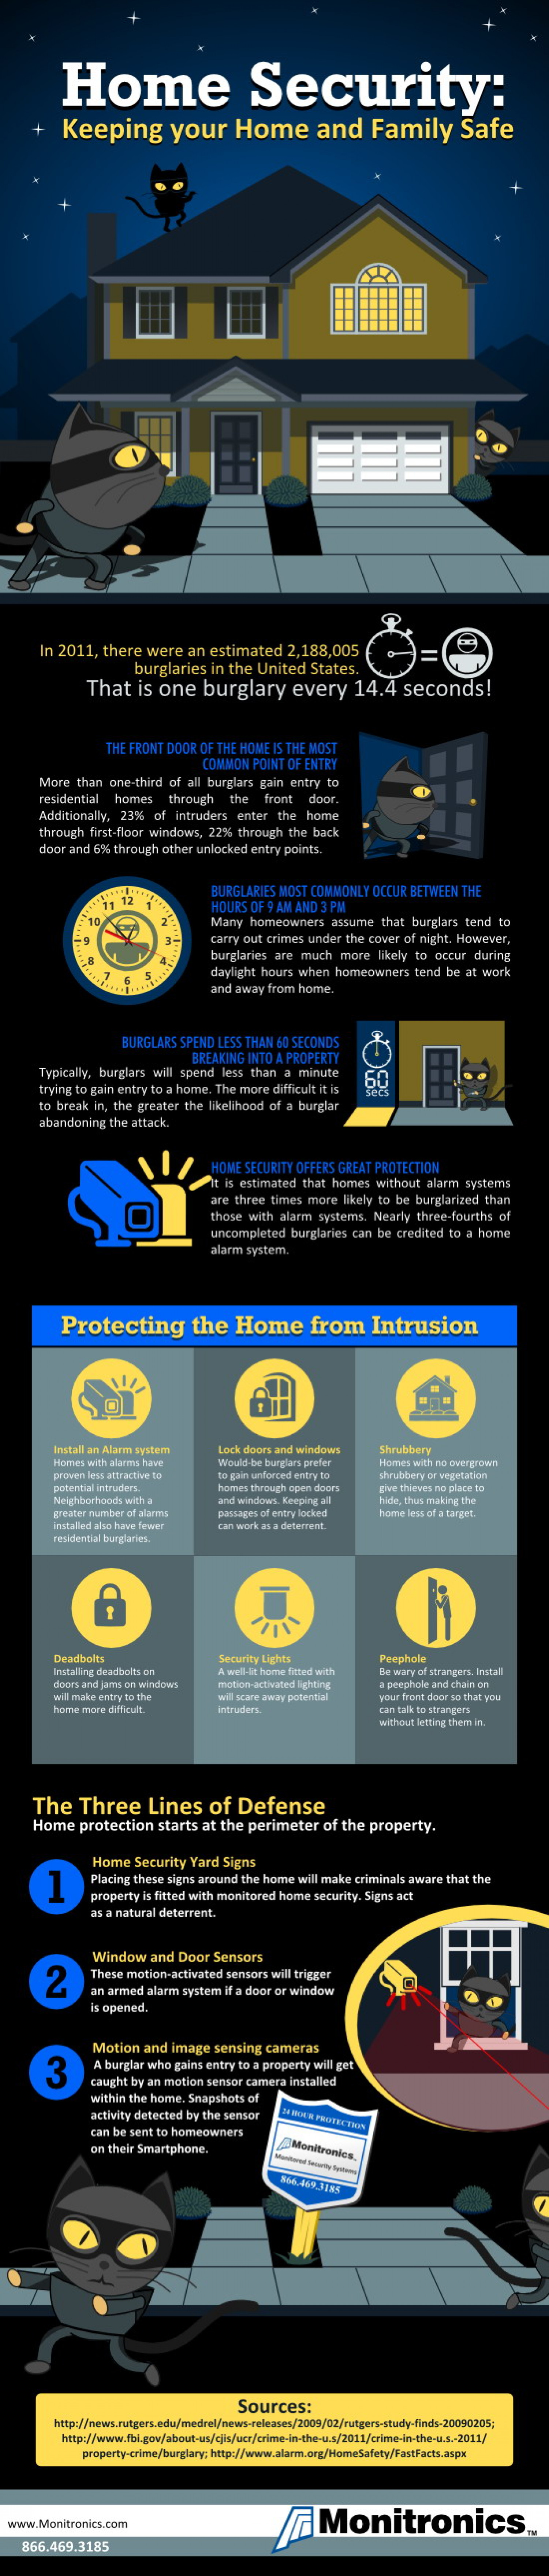 Home Security: Keeping your Home and Family Safe Infographic